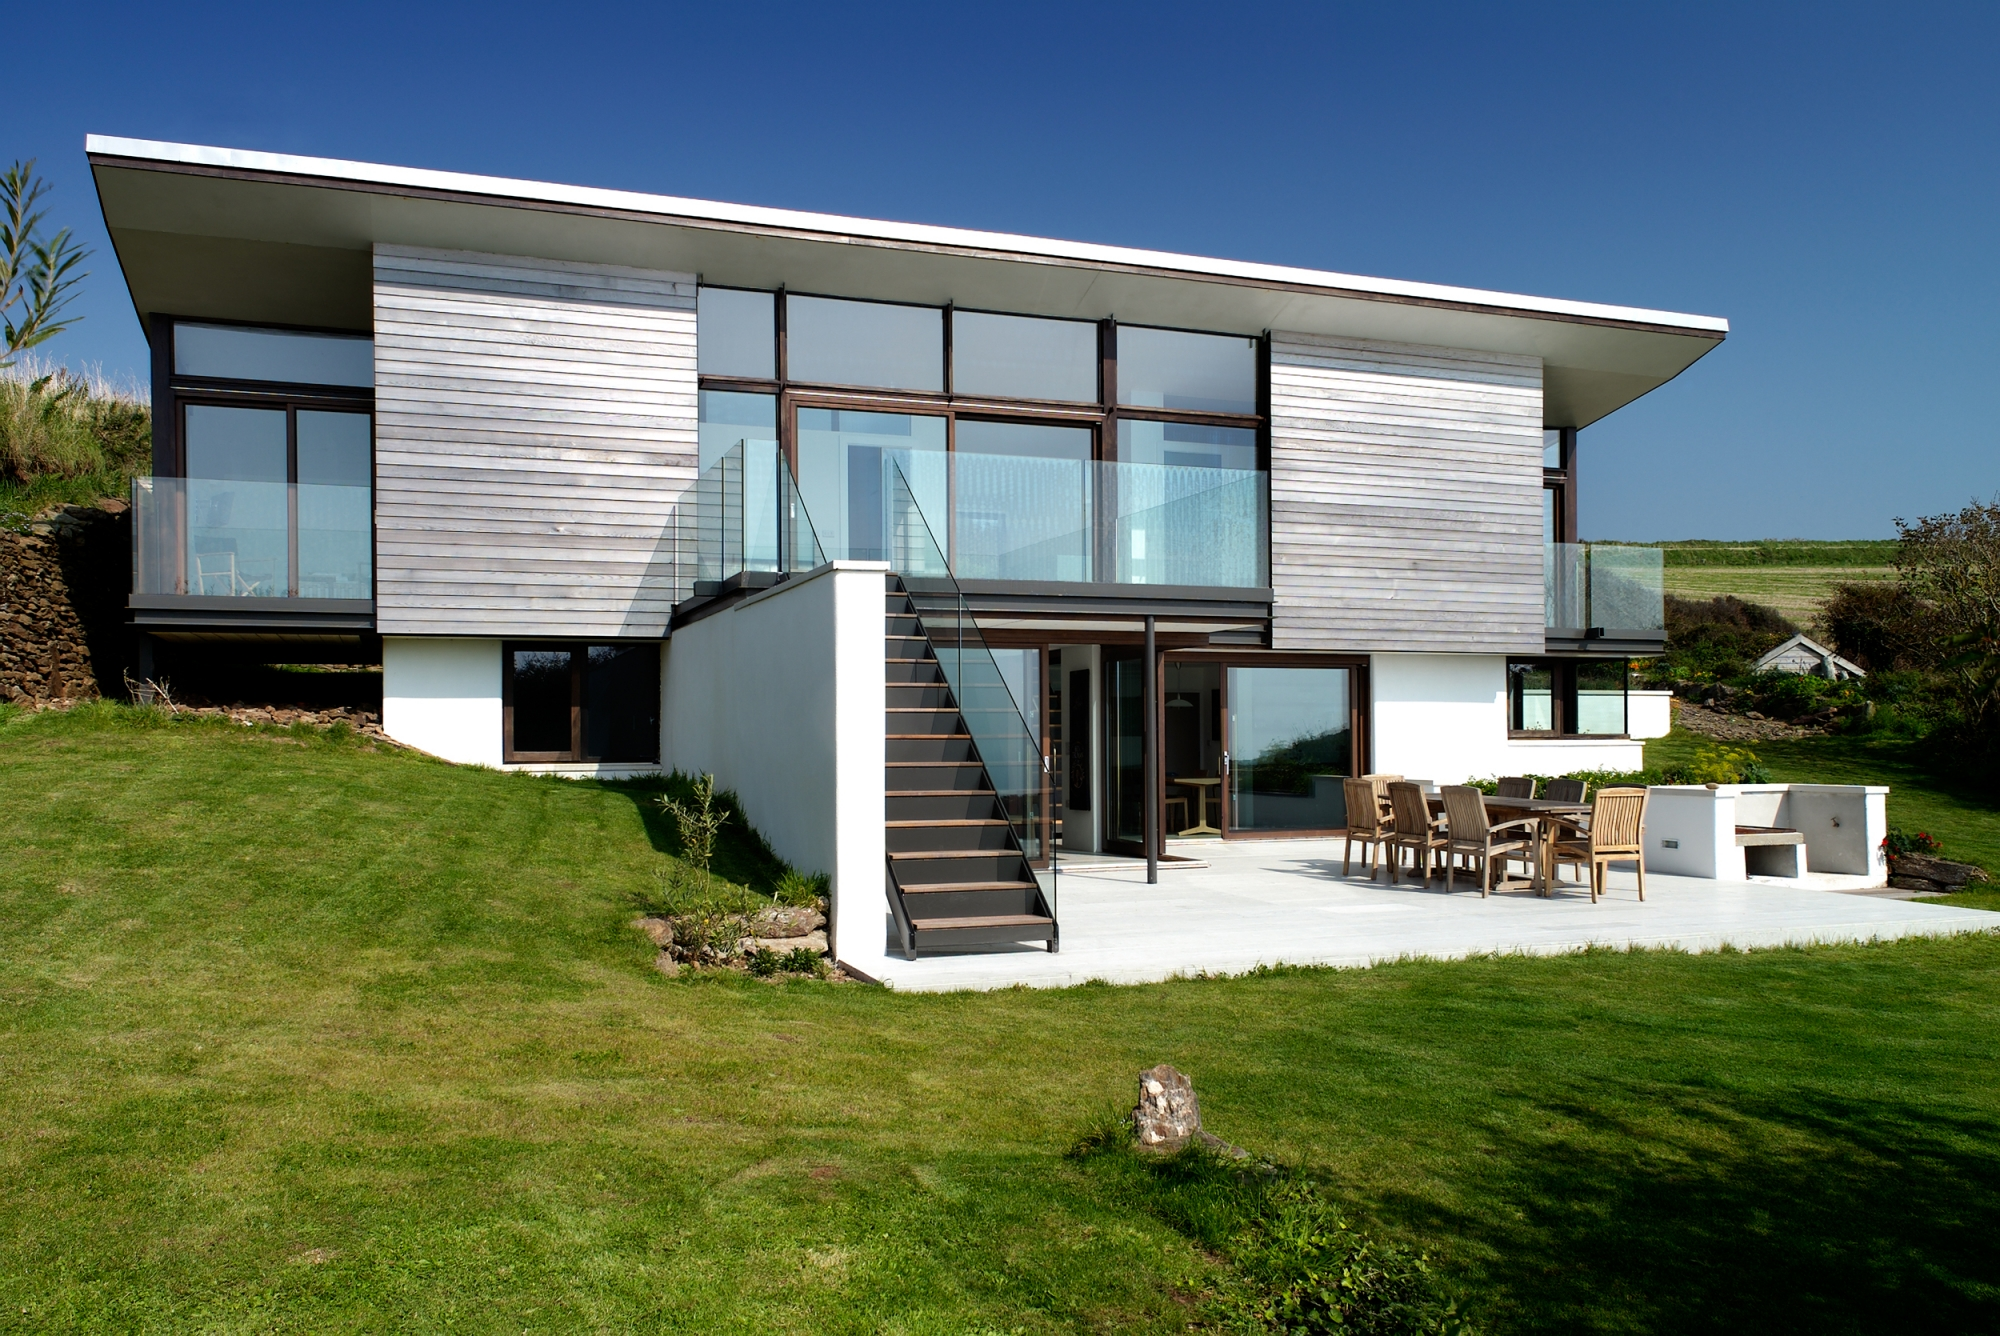 Seacombe grand design style devon holiday home with amazing sea view